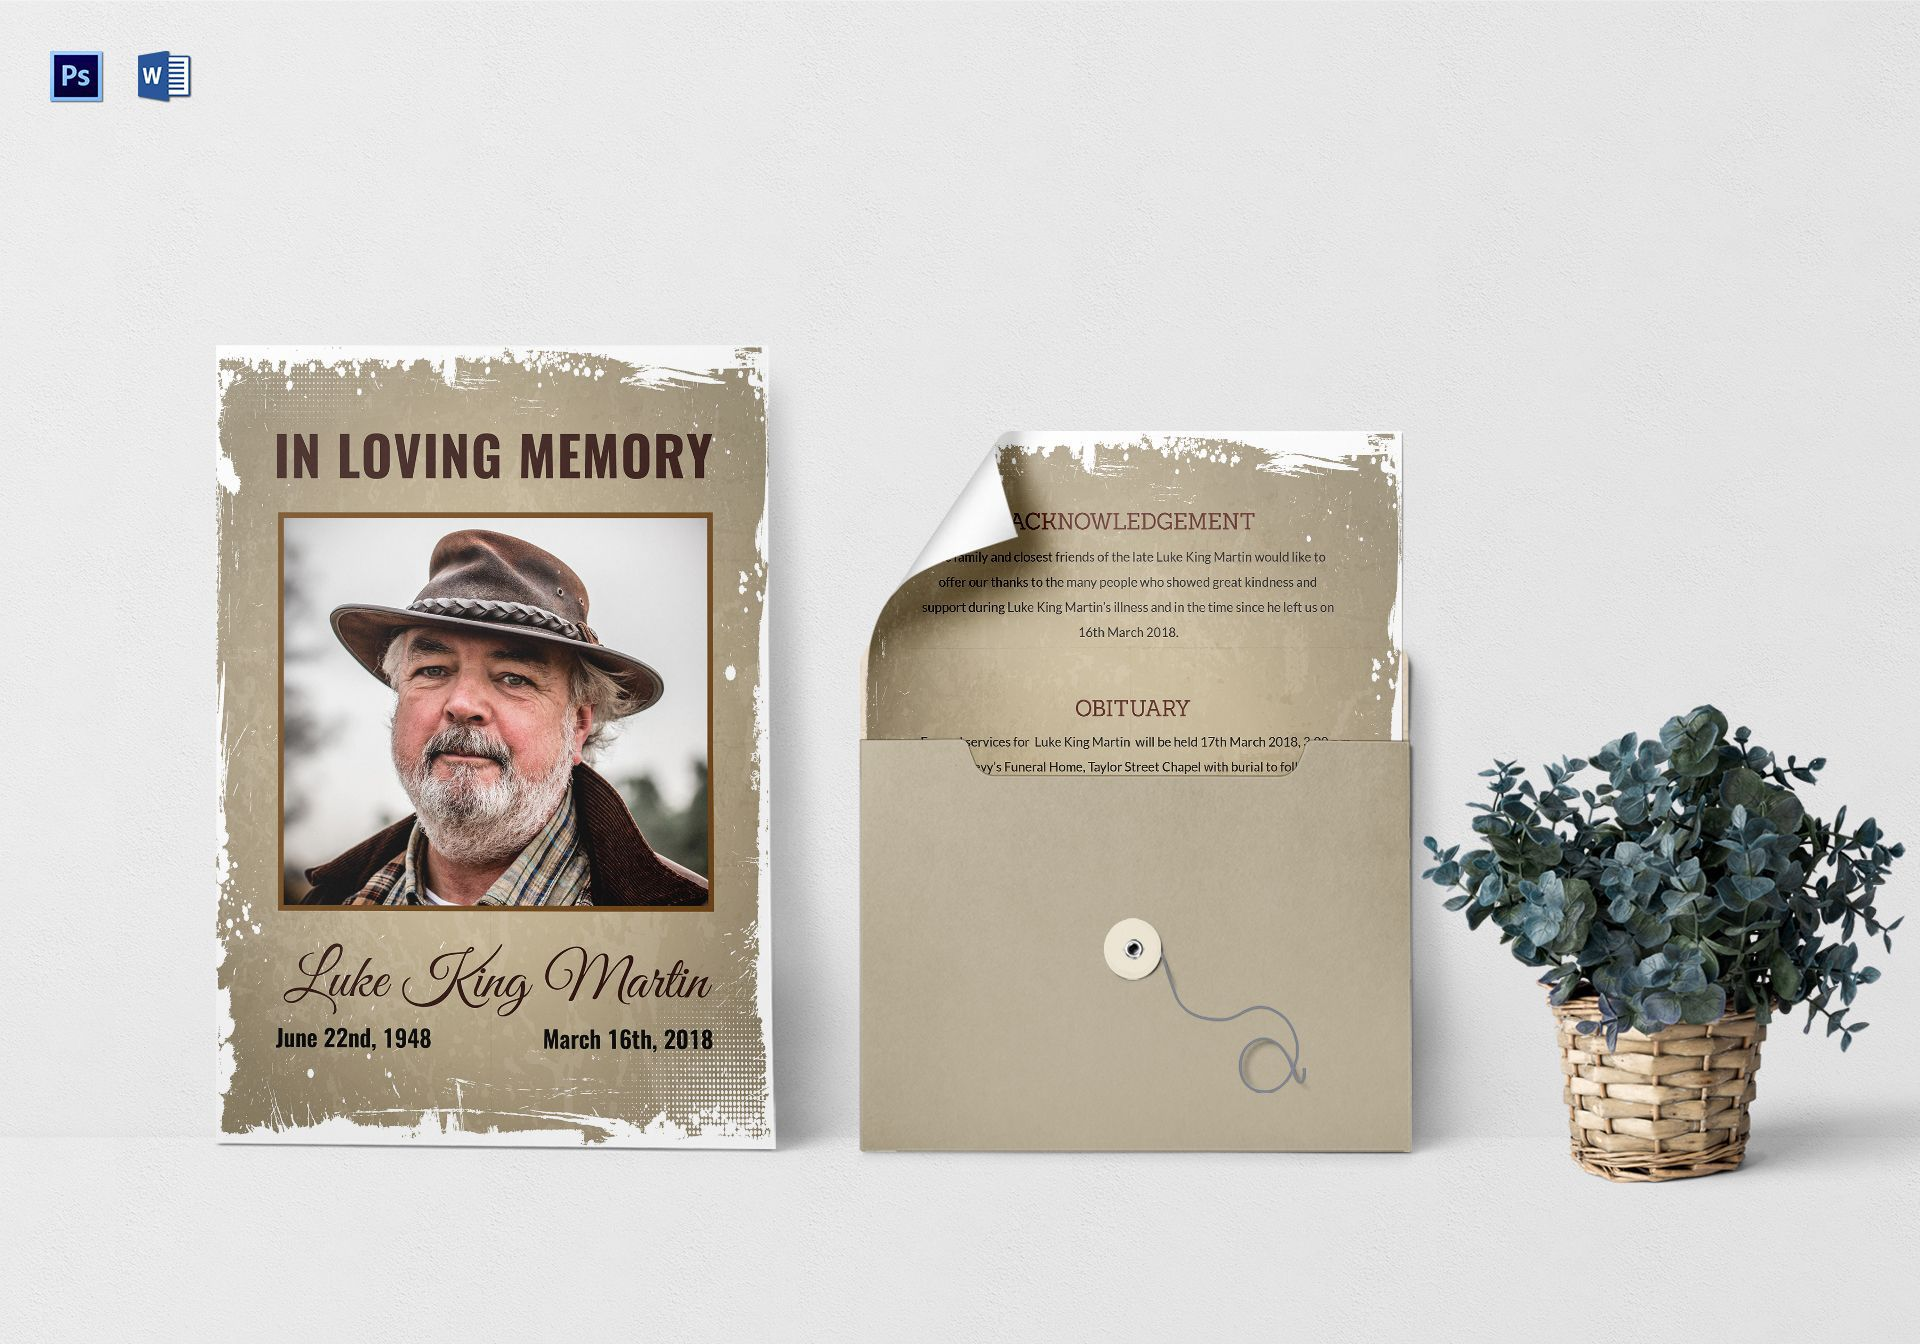 008 Wondrou In Loving Memory Template Word Highest Clarity Full